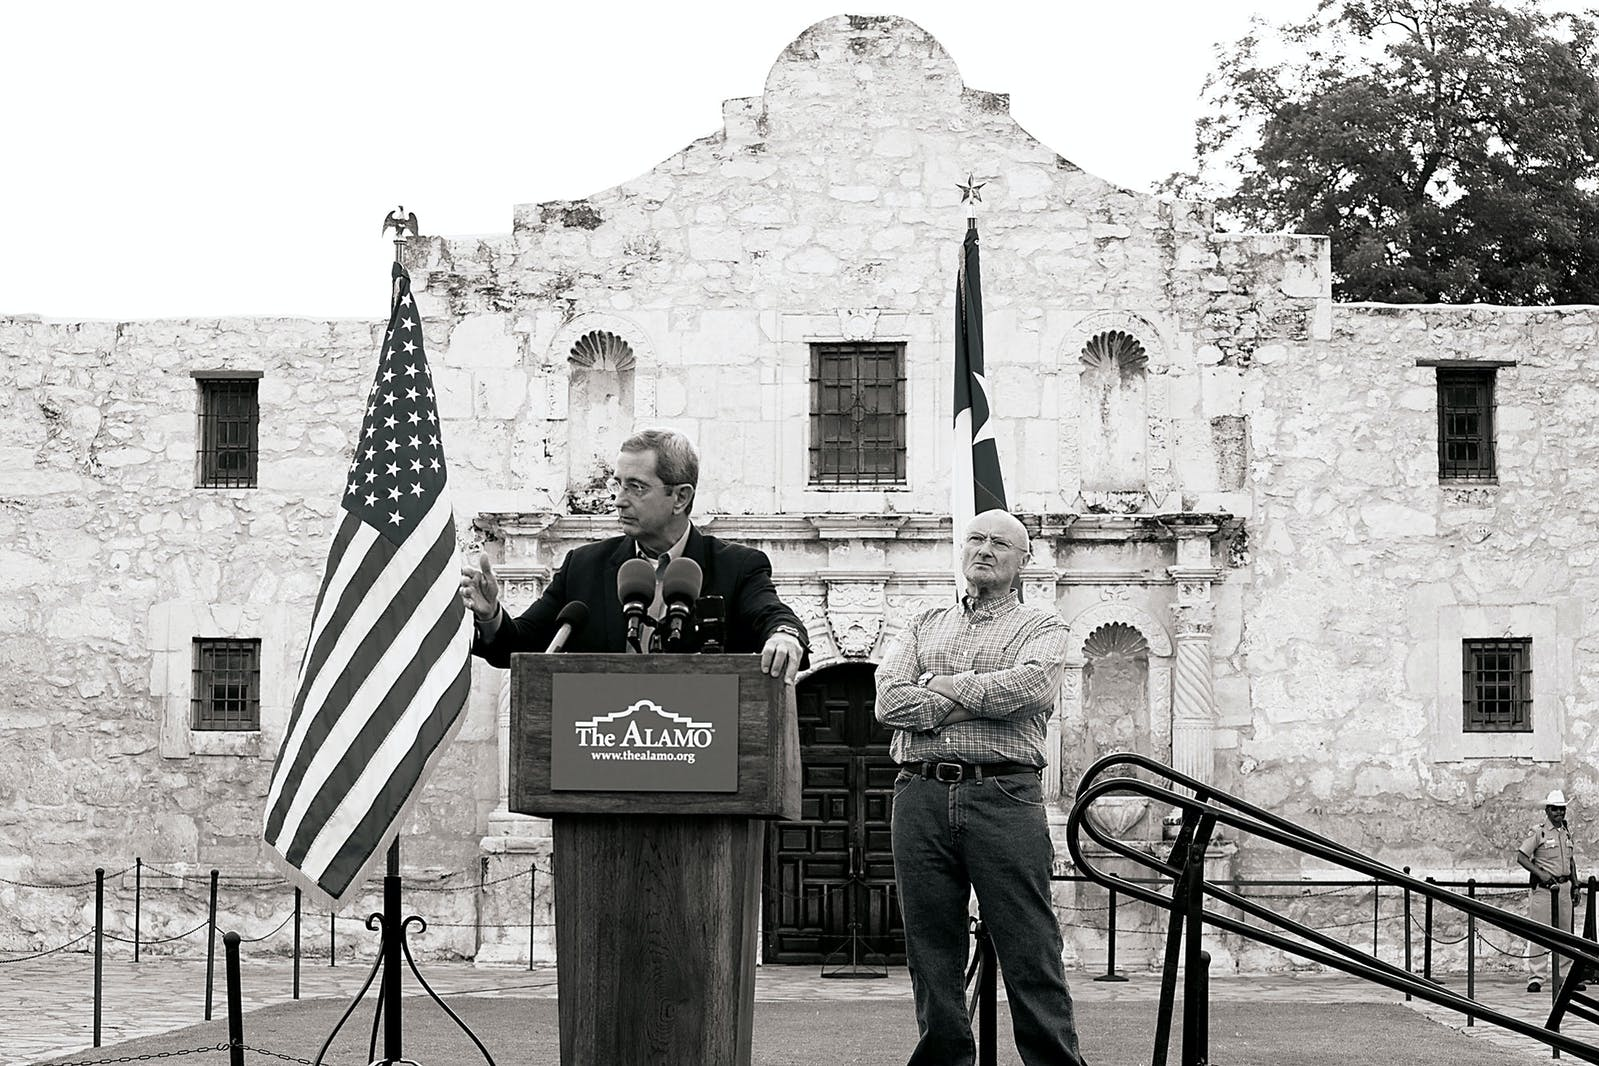 Jerry Patterson and Phil Collins at the Alamo